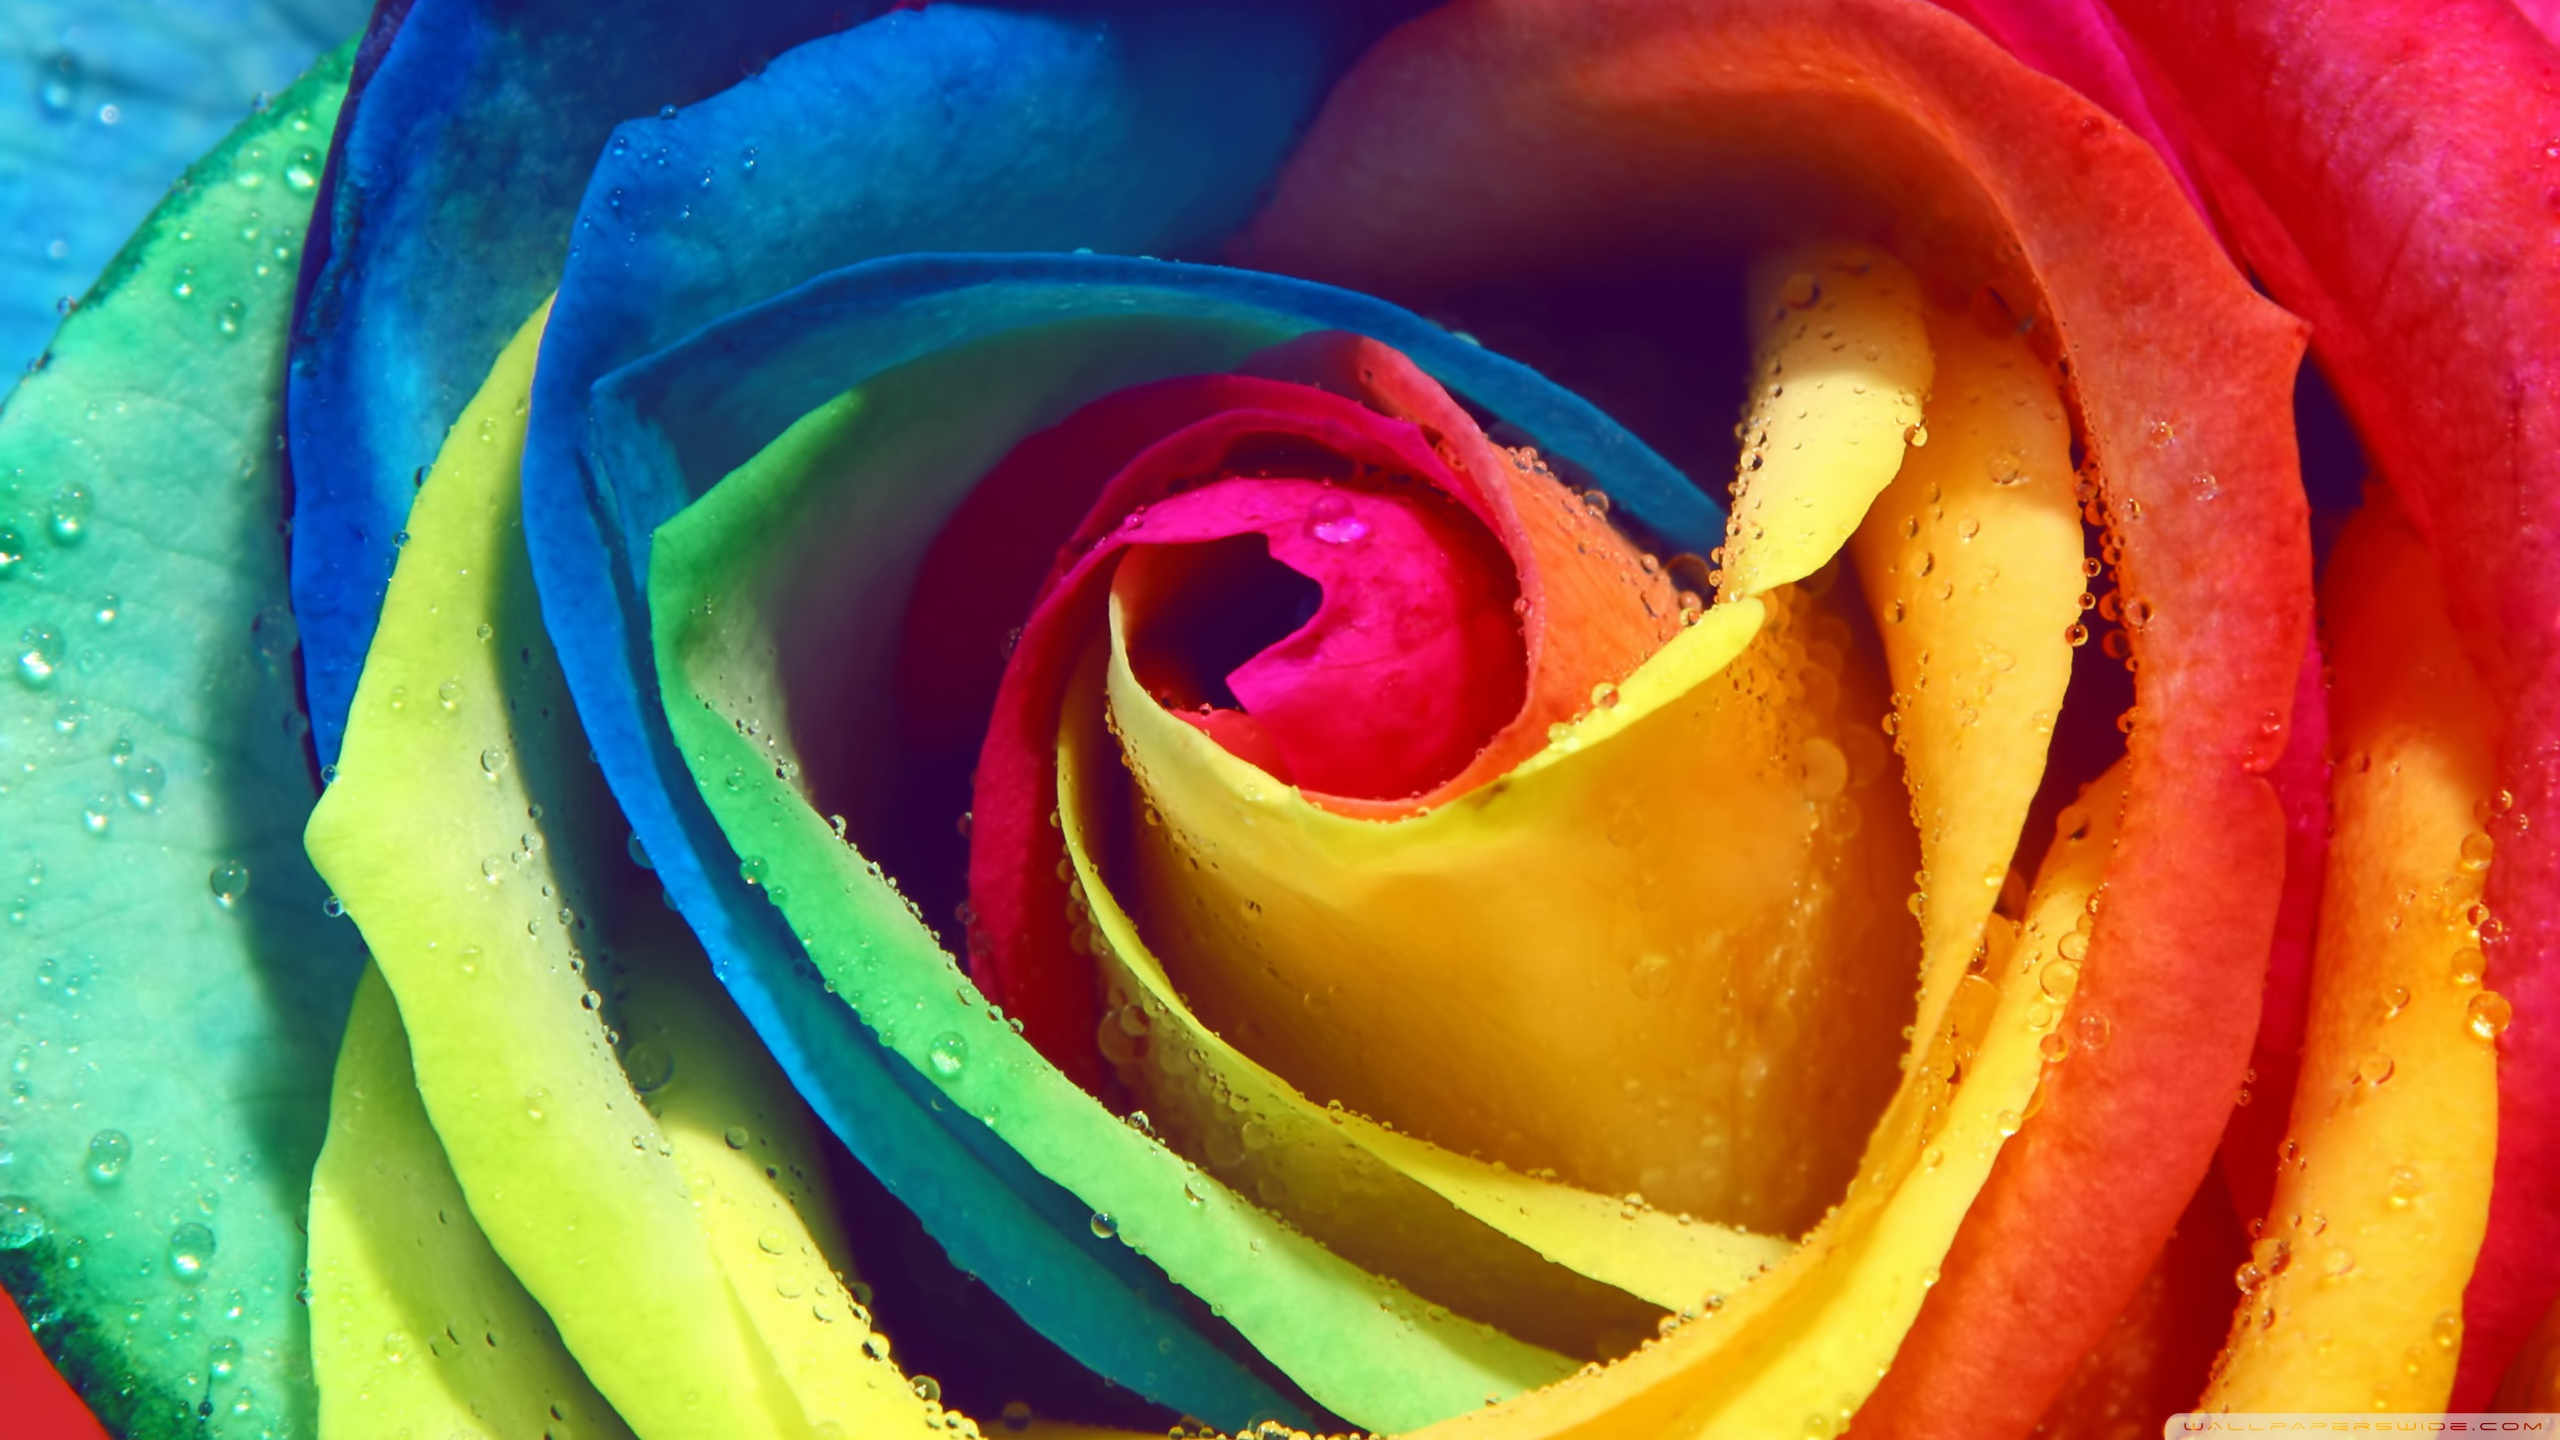 Rainbow Rose Wallpaper